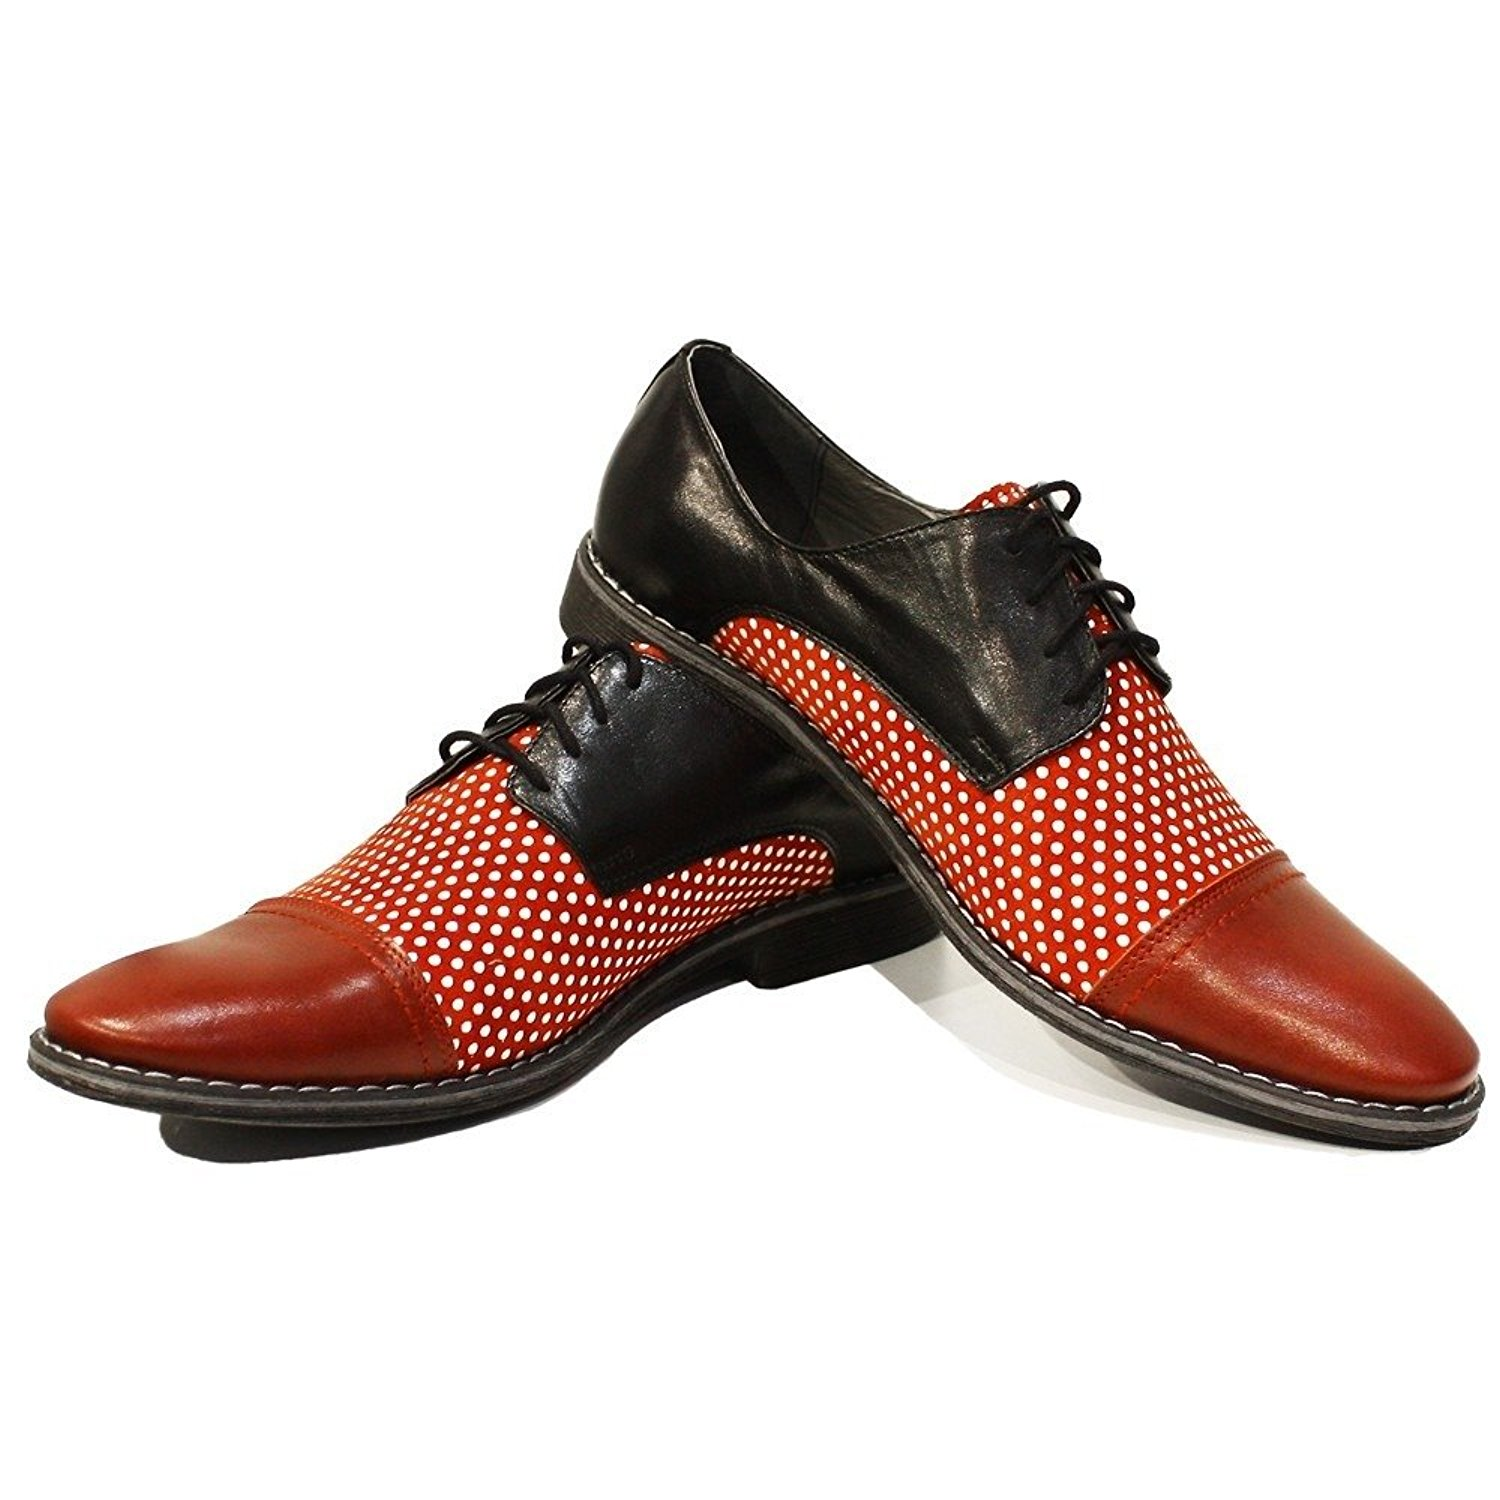 Modello Lukaso - Handmade Italian Mens Red Oxfords Dress Shoes - Cowhide Smooth Leather - Lace-up